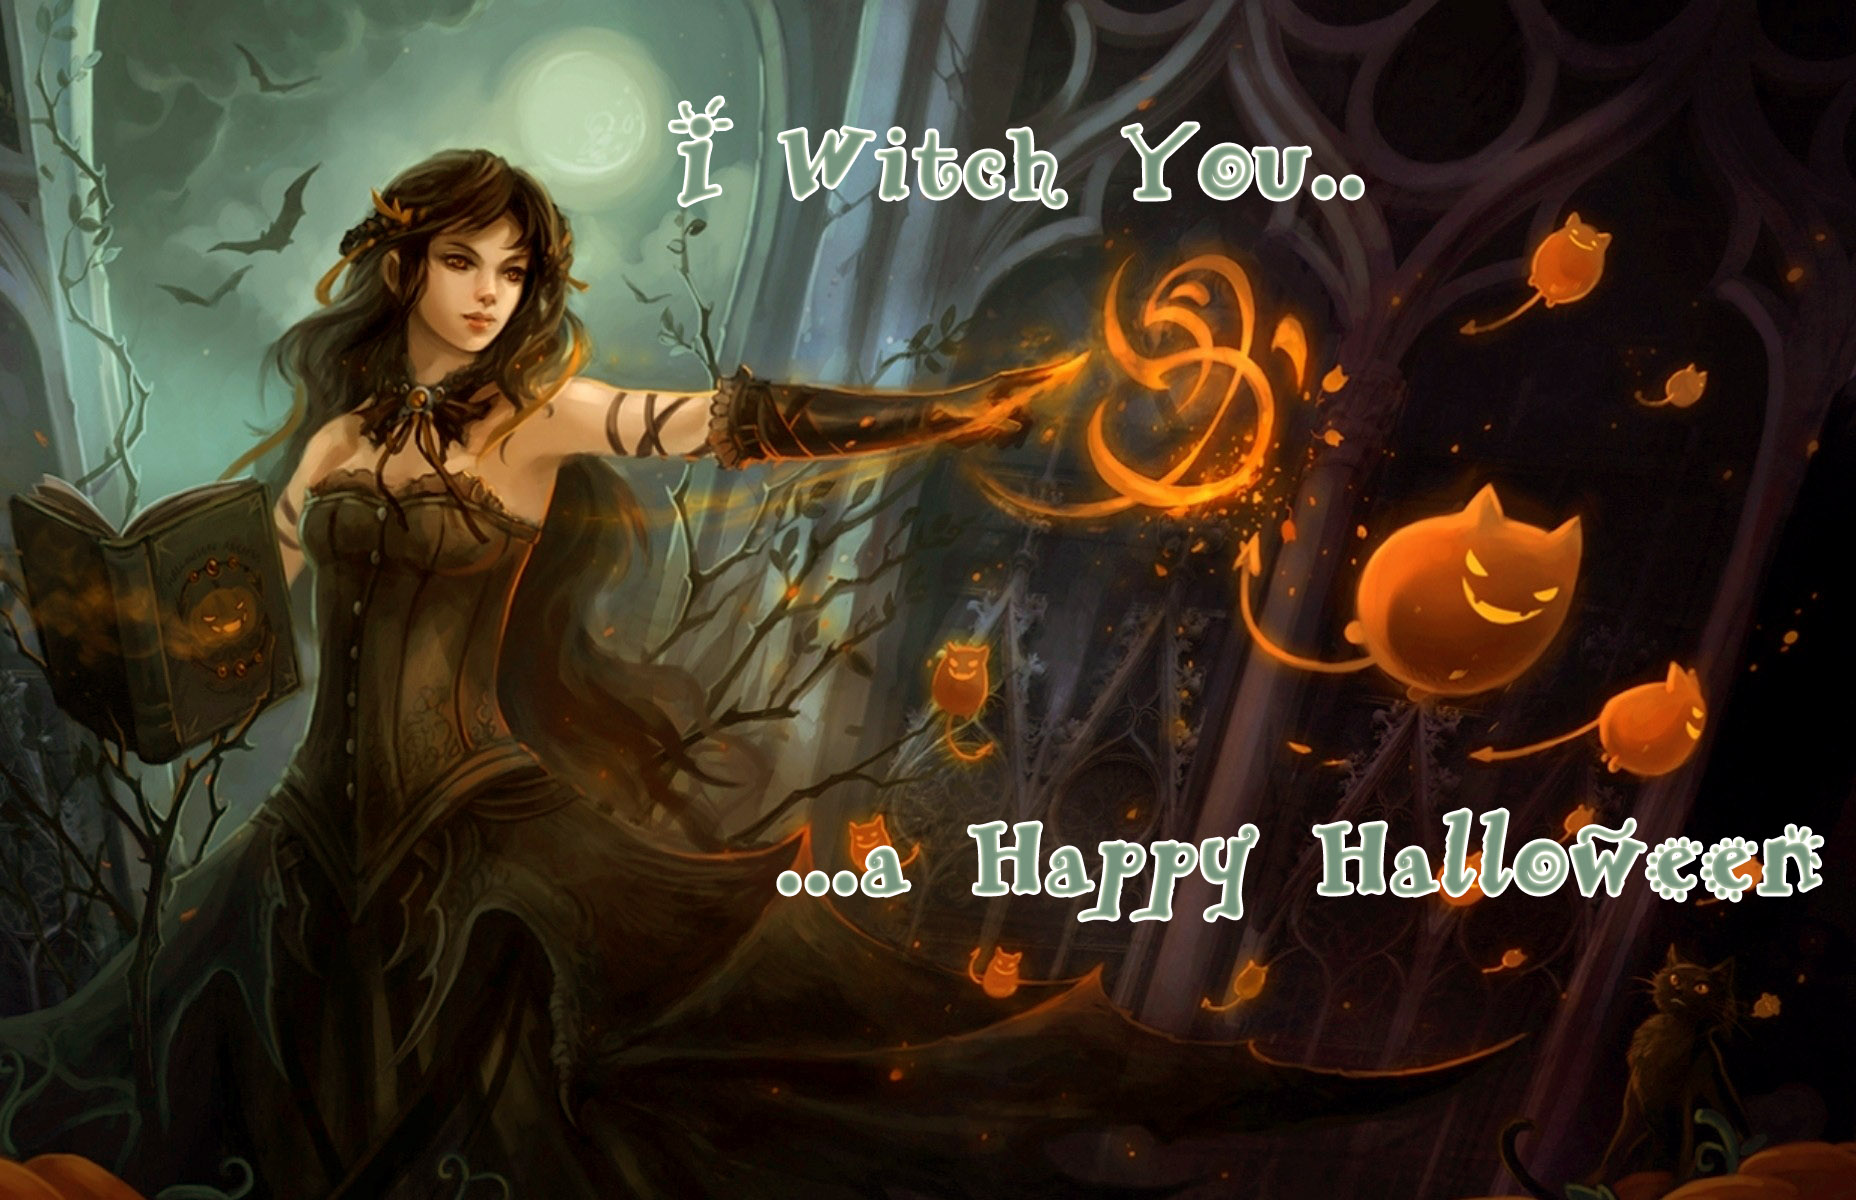 hot girl sexy halloween wallpaper ecard